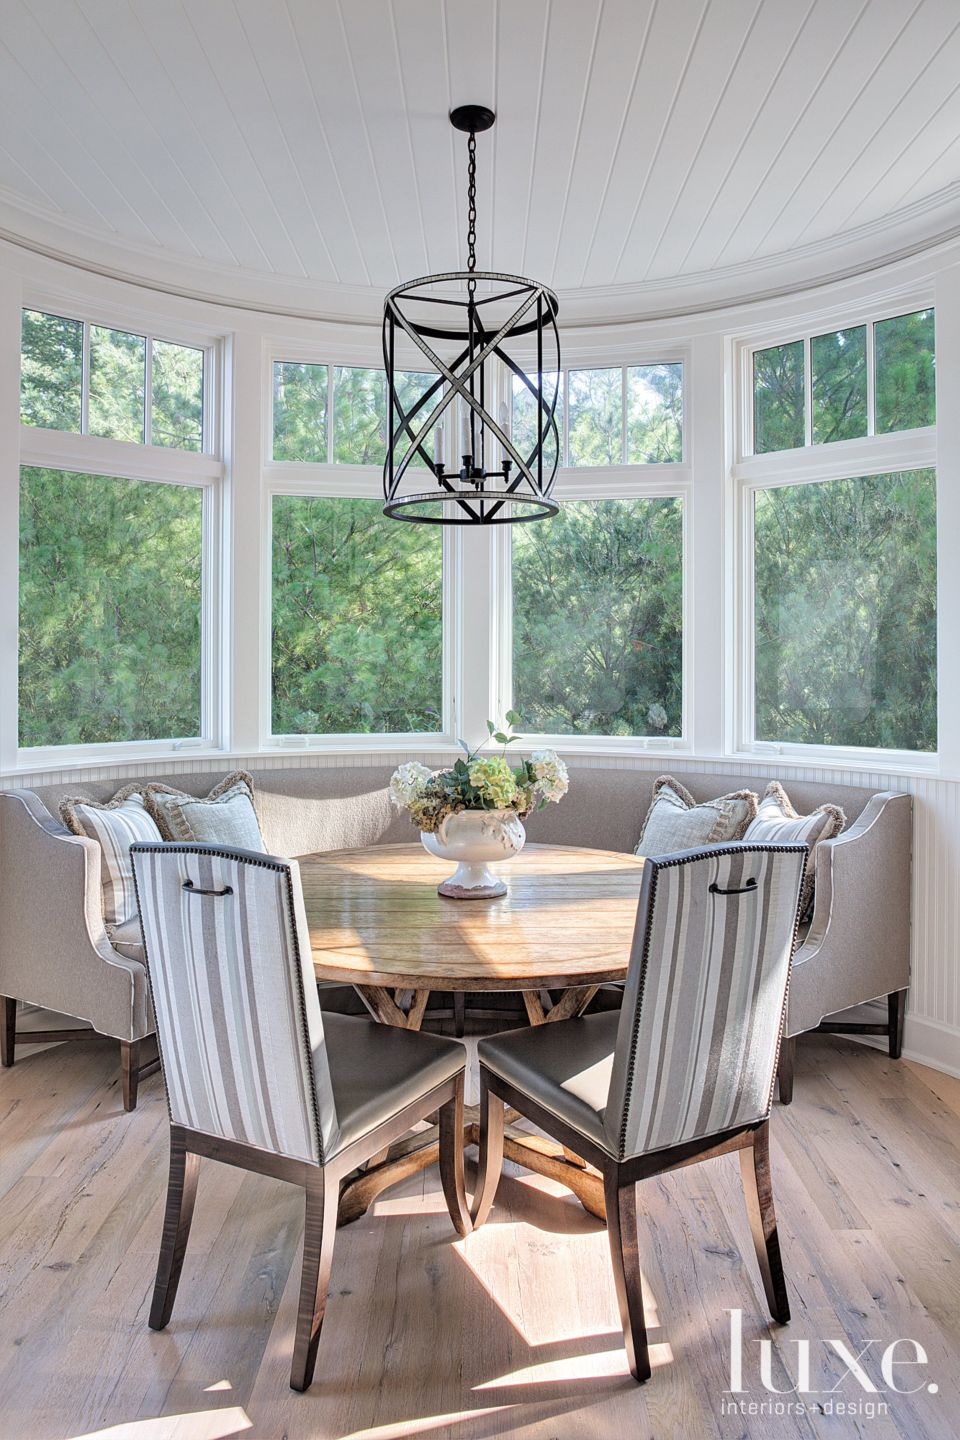 Contemporary Breakfast Area with Geometric Pendant